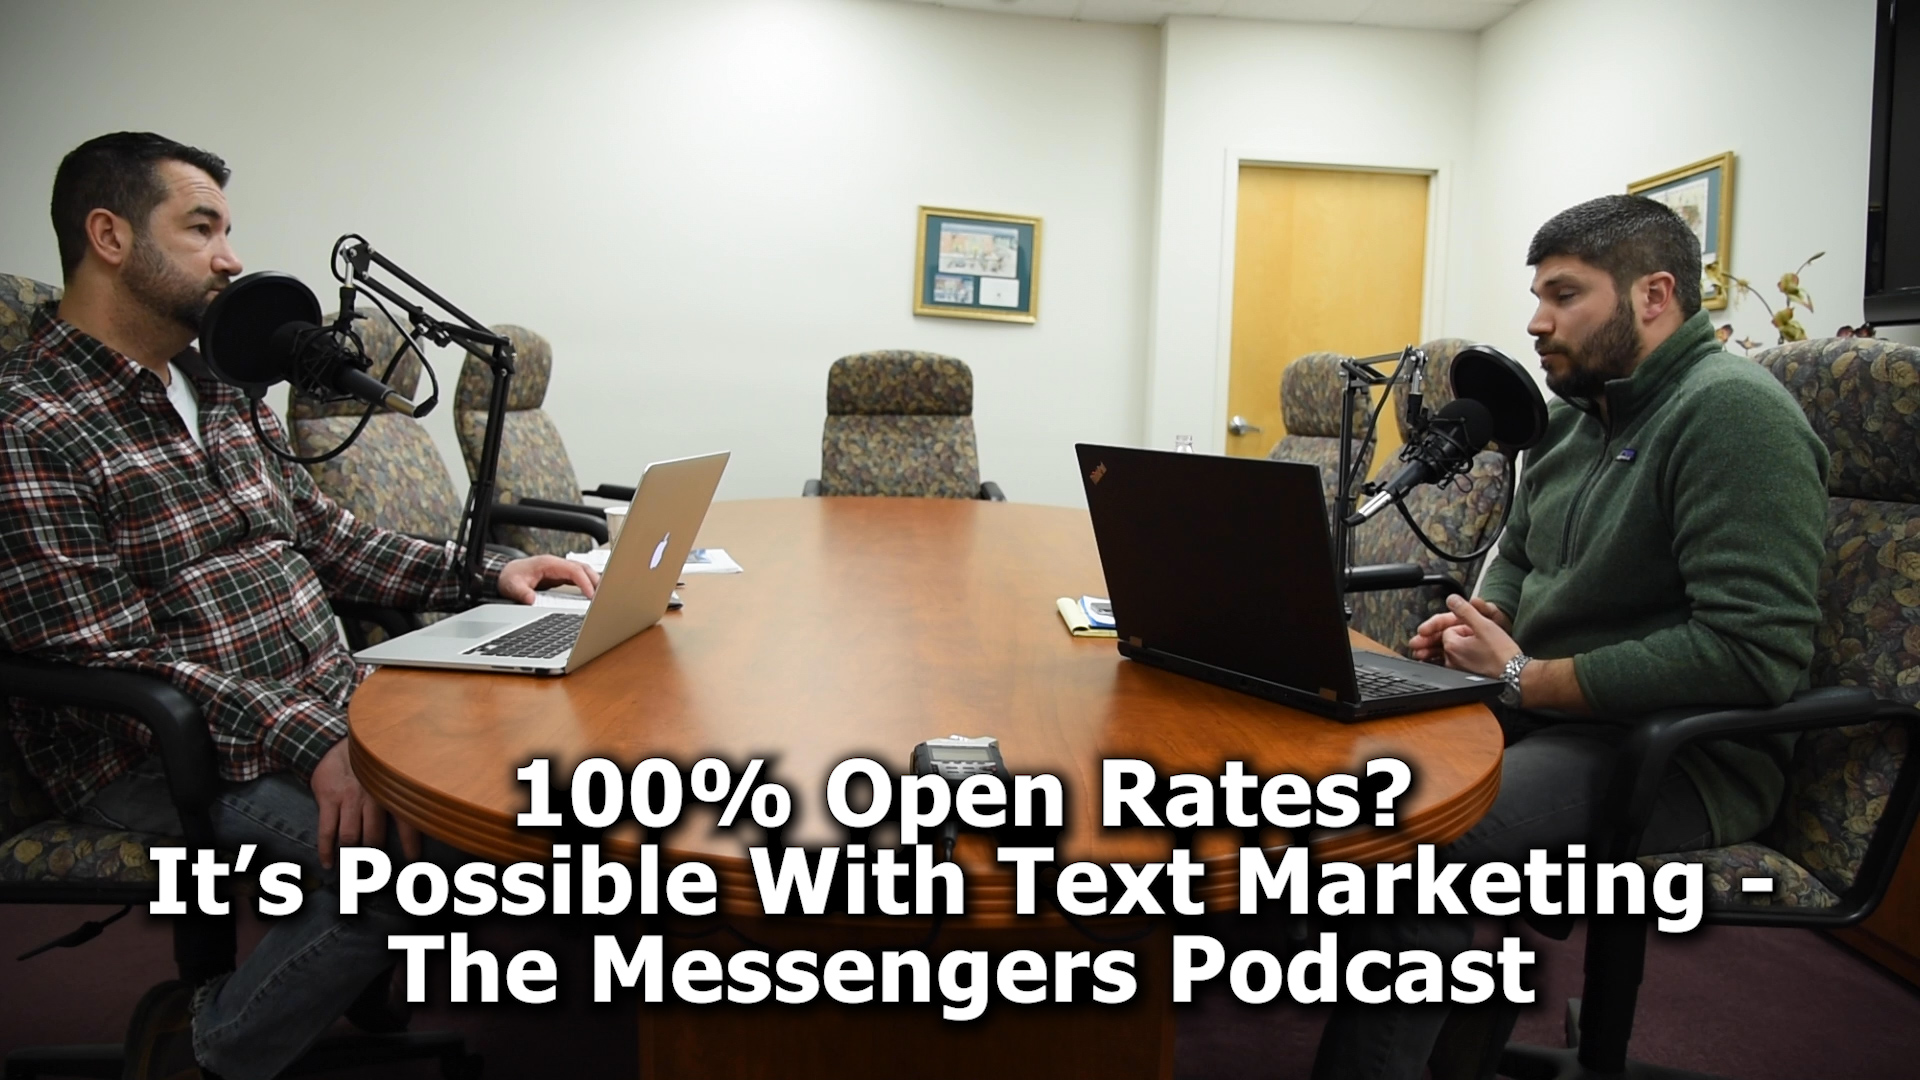 Text Marketing Delivers Big Results - The Messengers